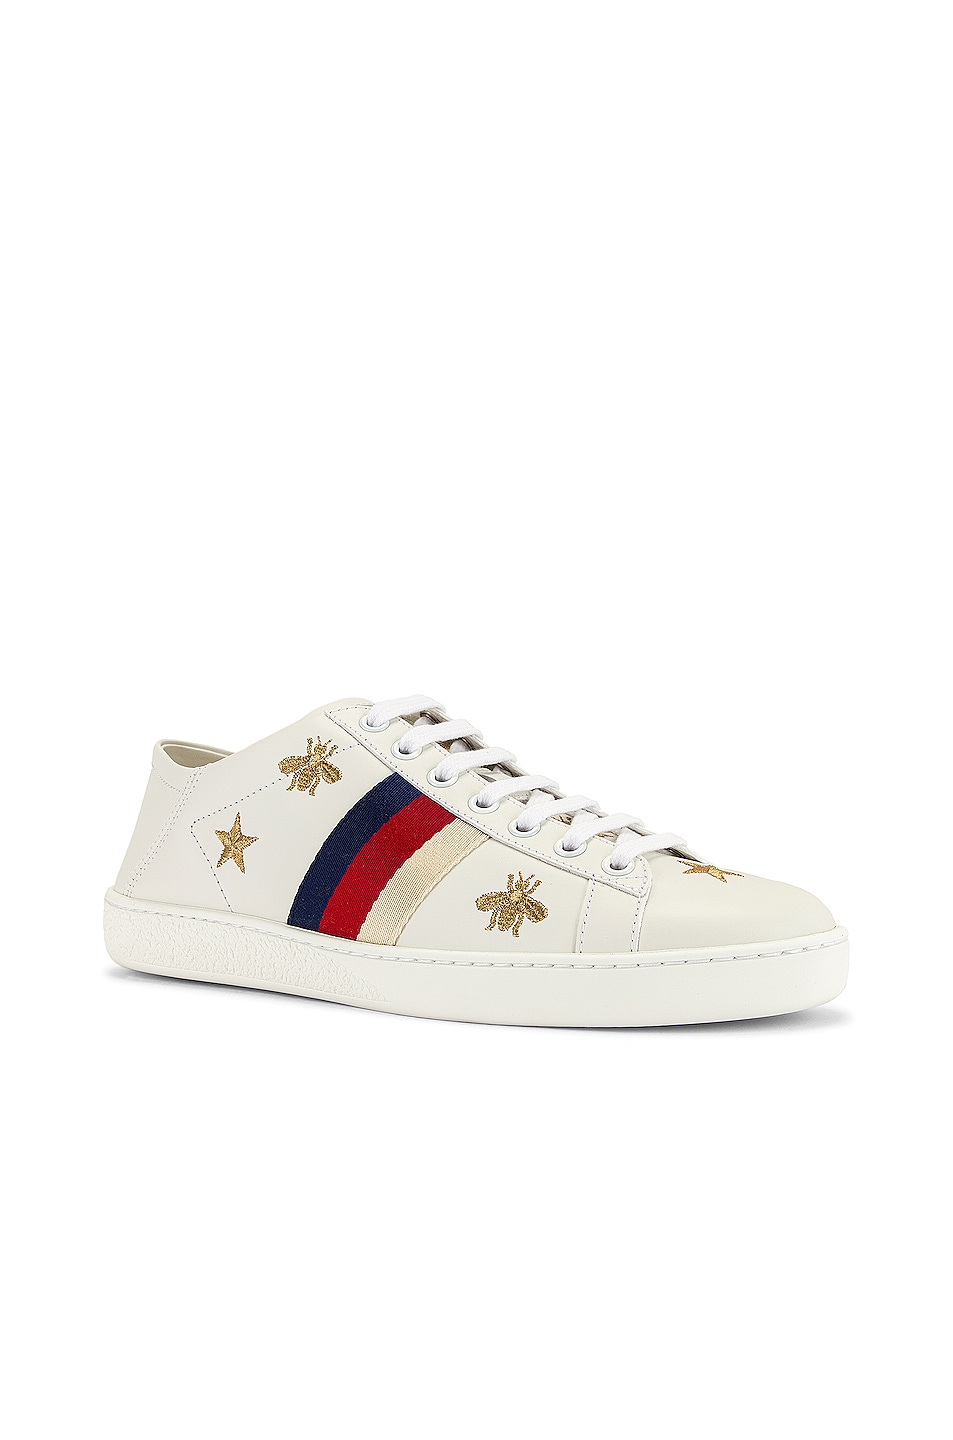 Image 2 of Gucci New Ace Sneakers in White